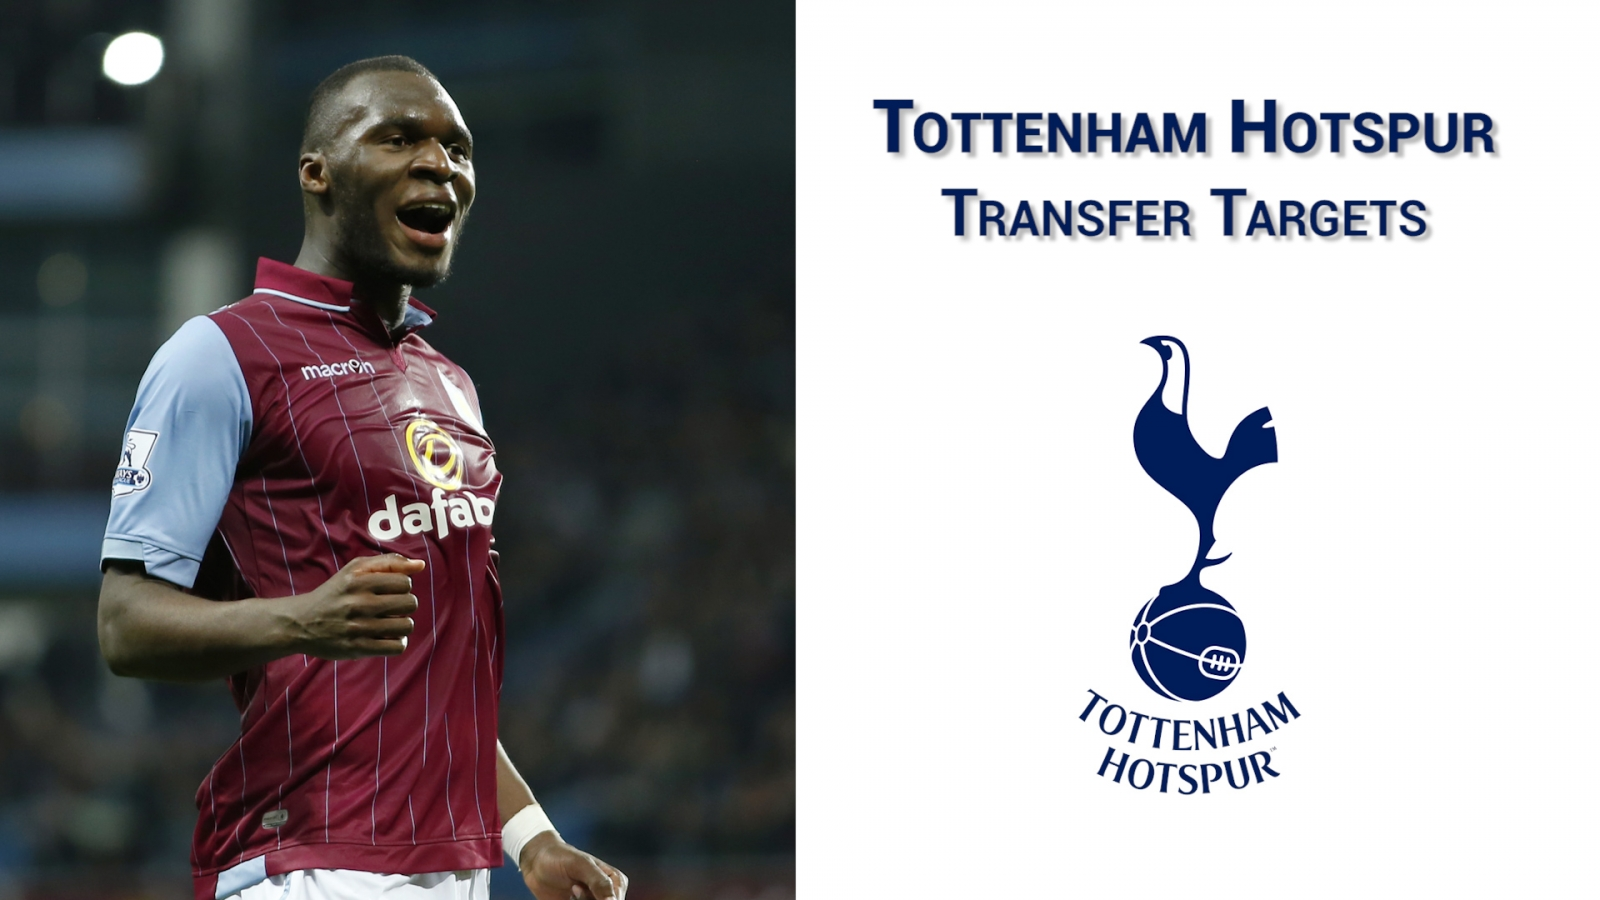 Tottenham Hotspur transfer targets: Who are the club ...